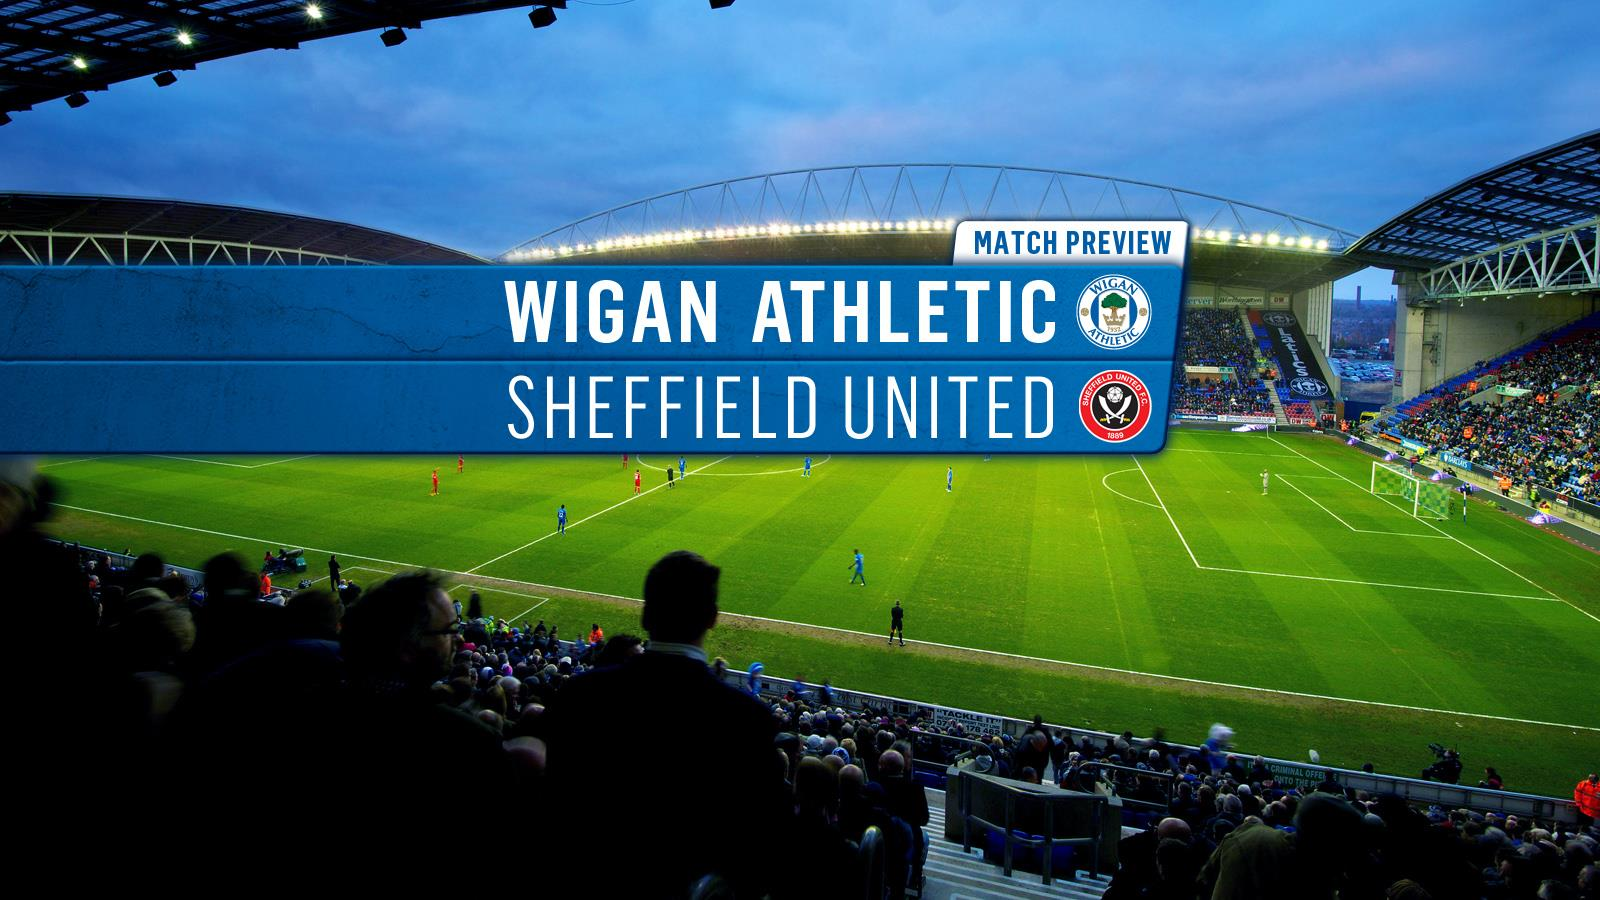 wigan-athletic-v-sheffield-united-match-preview-16x973-2864081_1600x900